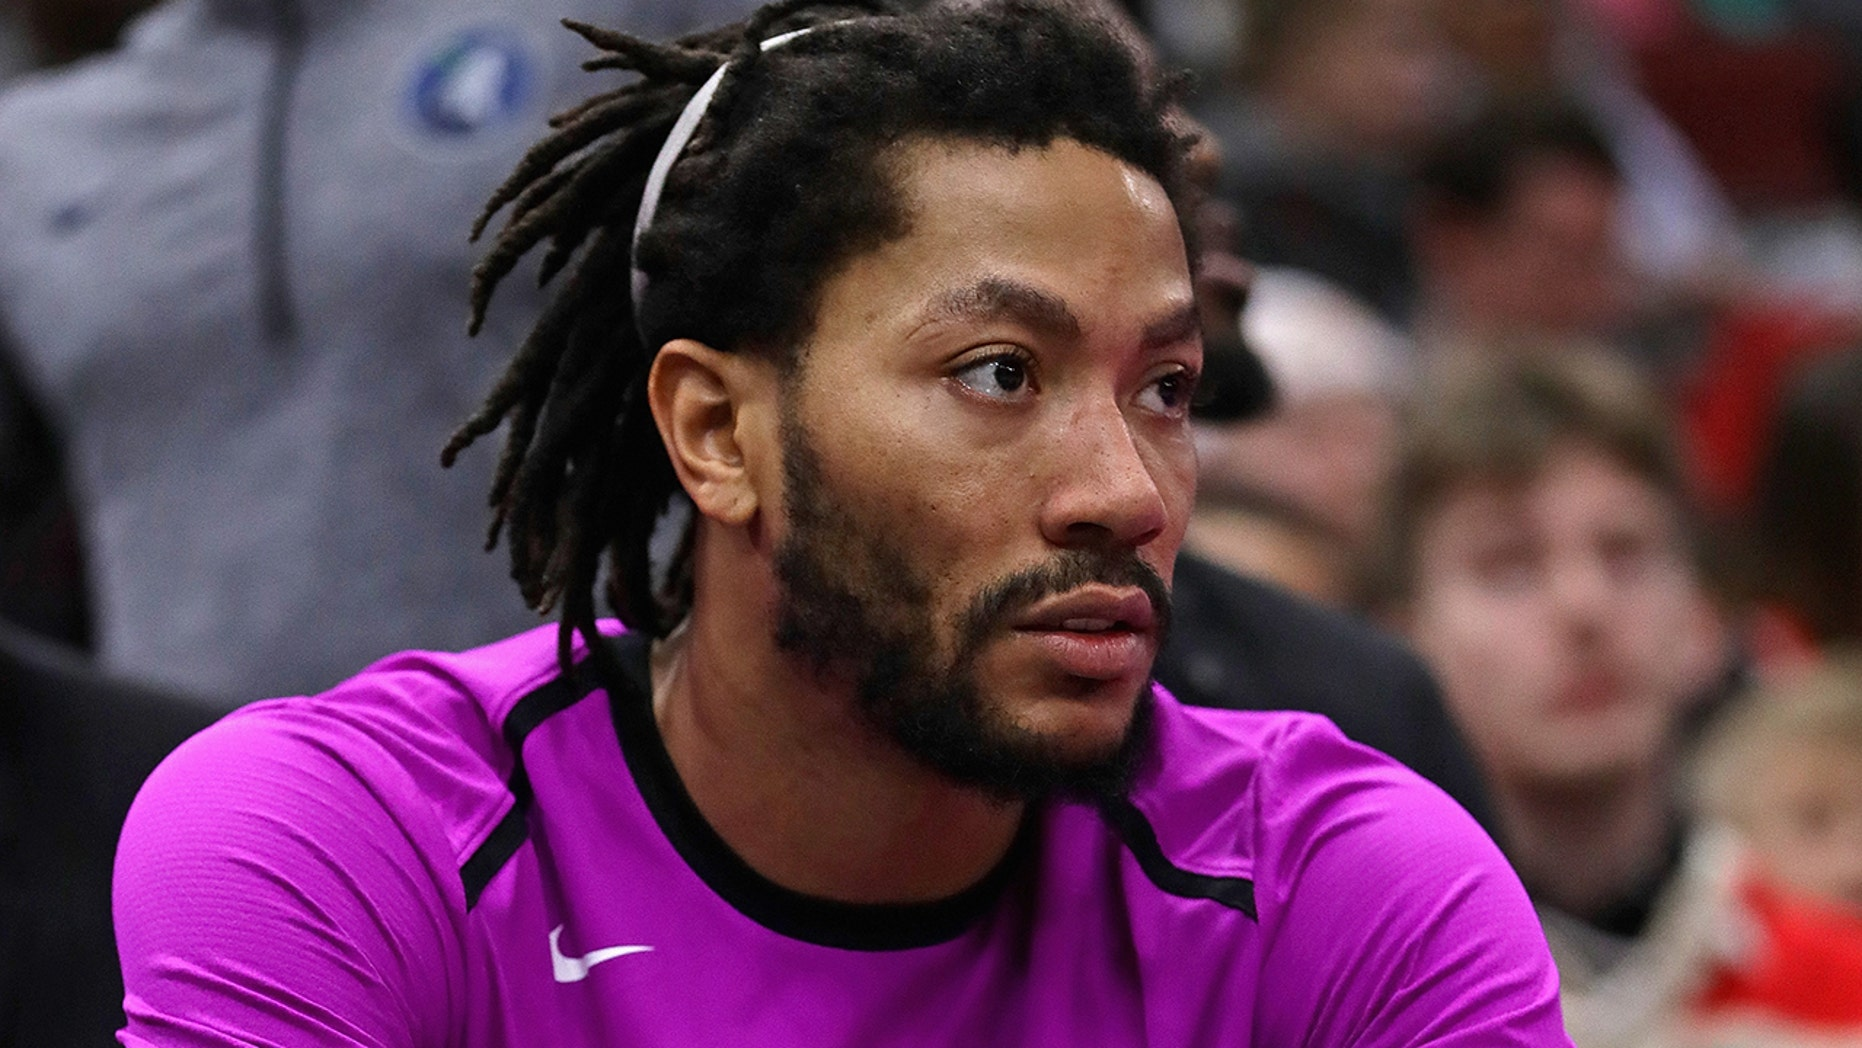 Derrick Rose #25 of the Minnesota Timberwolves watches from the bench as teammates take on the Chicago Bulls at the United Center on December 26, 2018 in Chicago, Illinois.